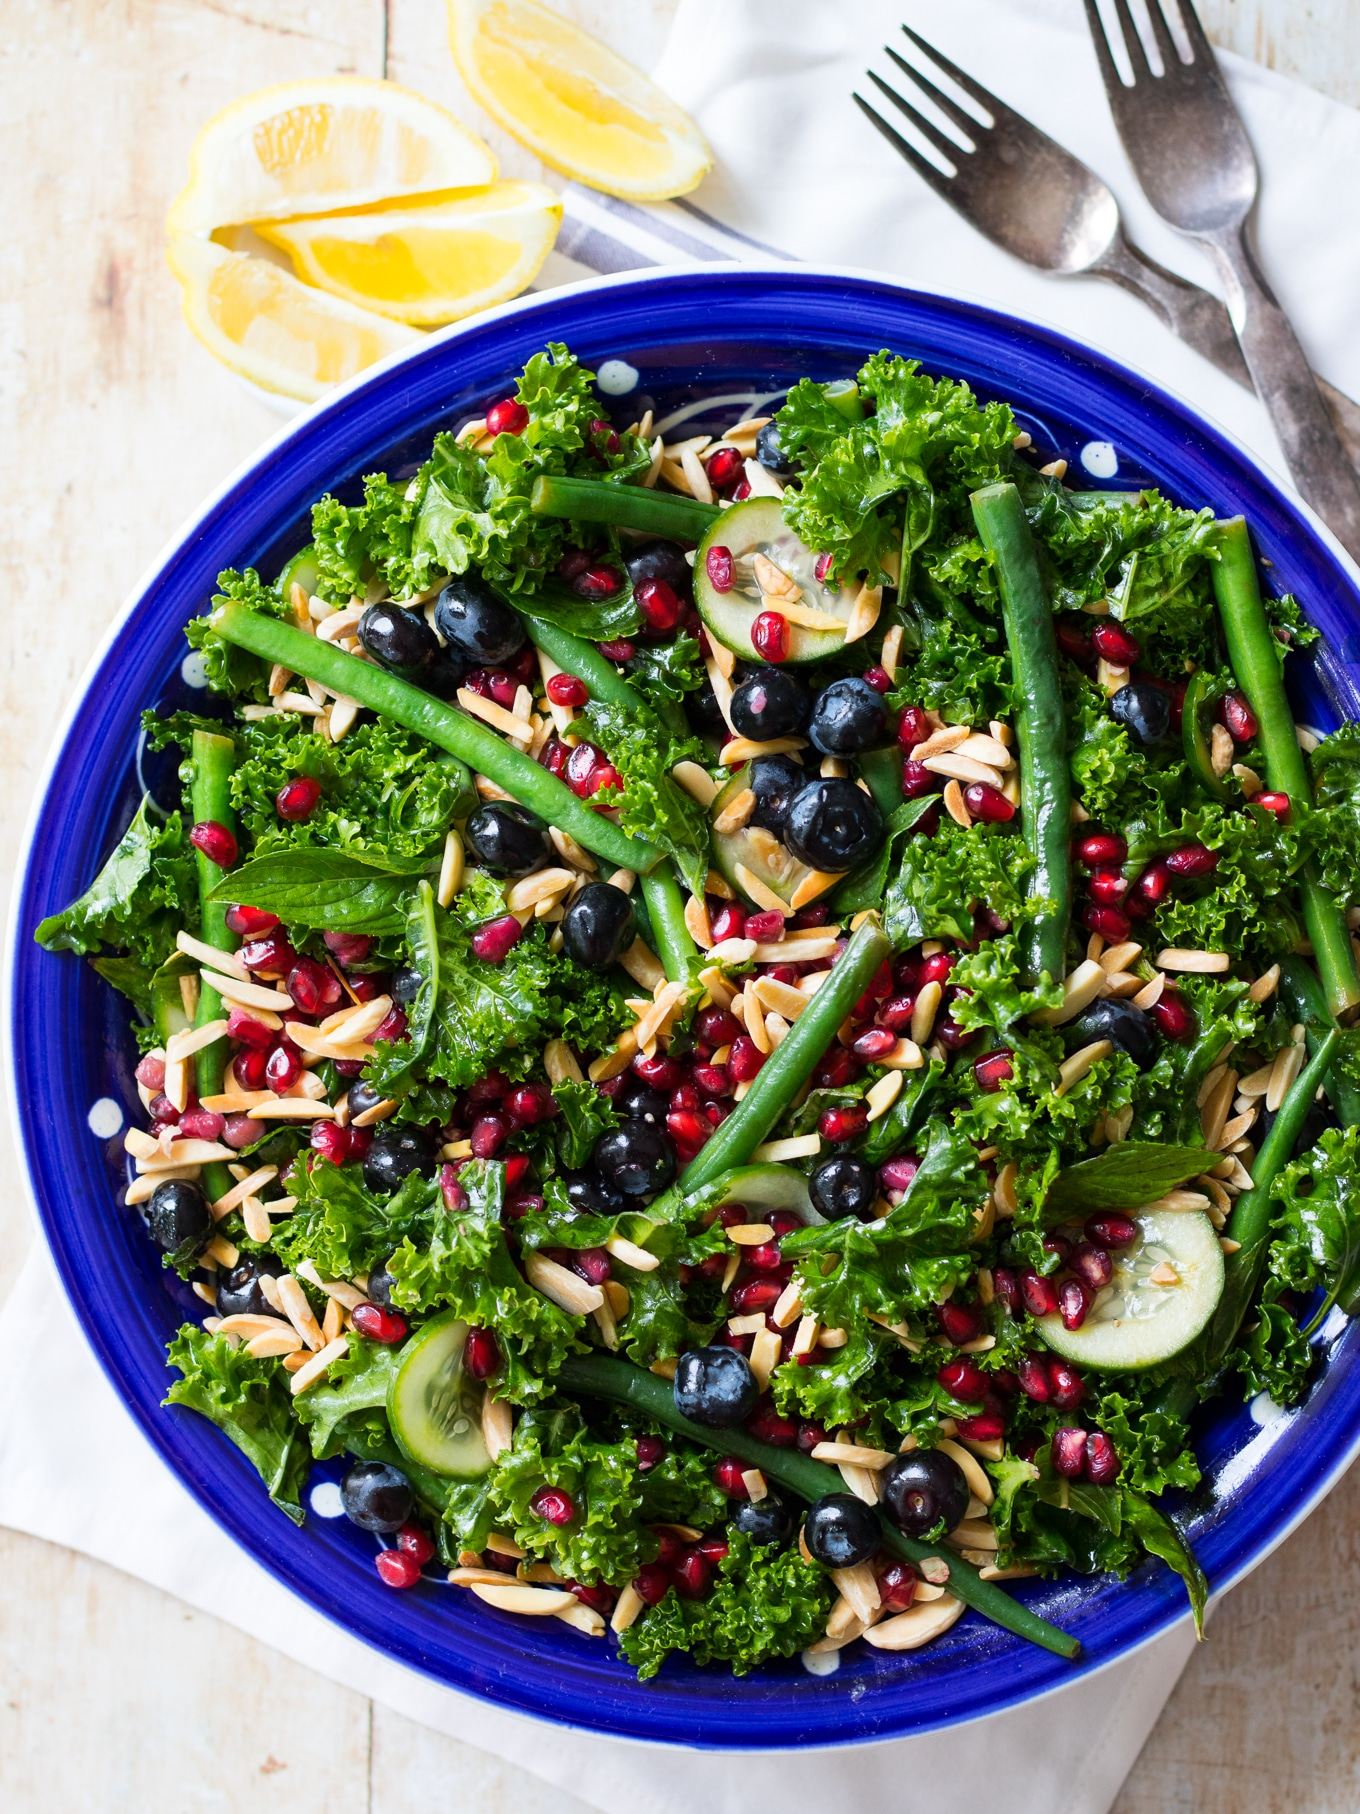 A summery blueberry kale salad filled with vibrant healthy greens, blueberries, pomegranate and crunchy toasted almonds. Perfect for sharing at a BBQ or any dinner party! Gluten free, dairy free, grain free and paleo. #kalesalad